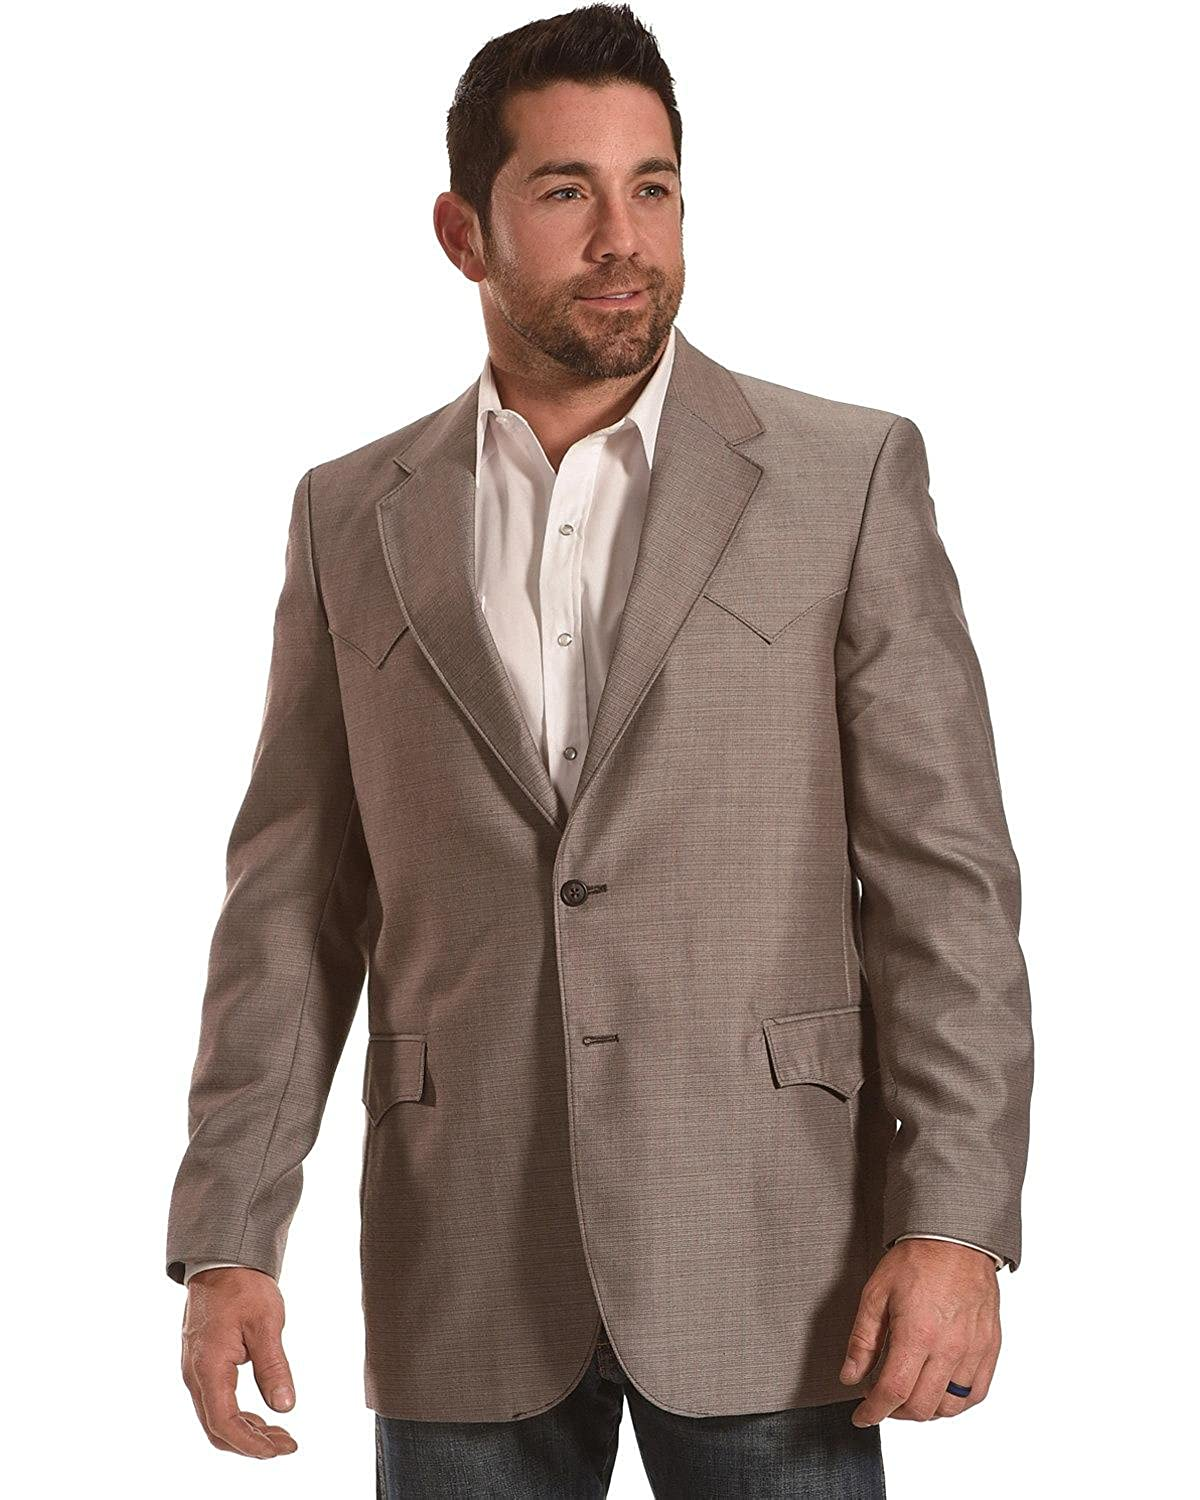 Circle S Men's Plano Nutmeg Sport Coat Big Tall - Cc1046-06-B&T 2000234748